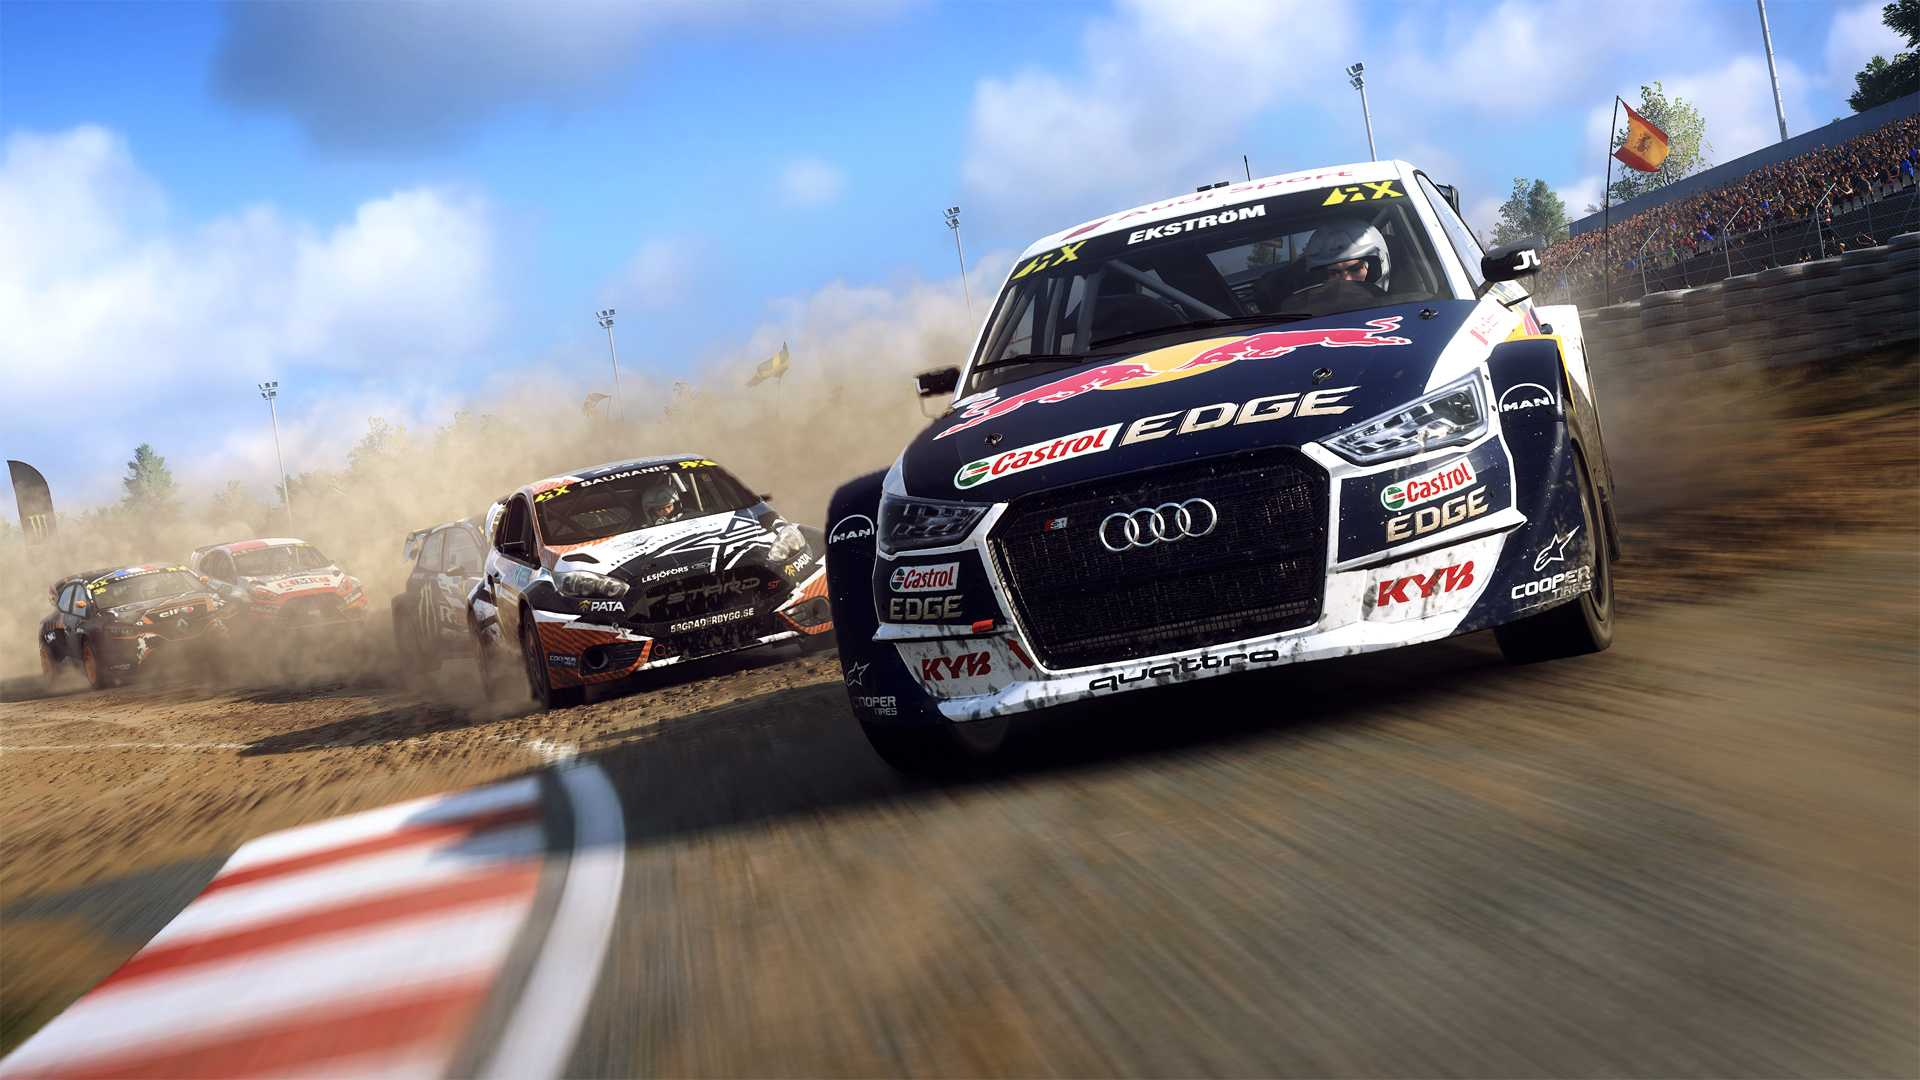 DiRT Rally 2.0 implementerà il supporto VR